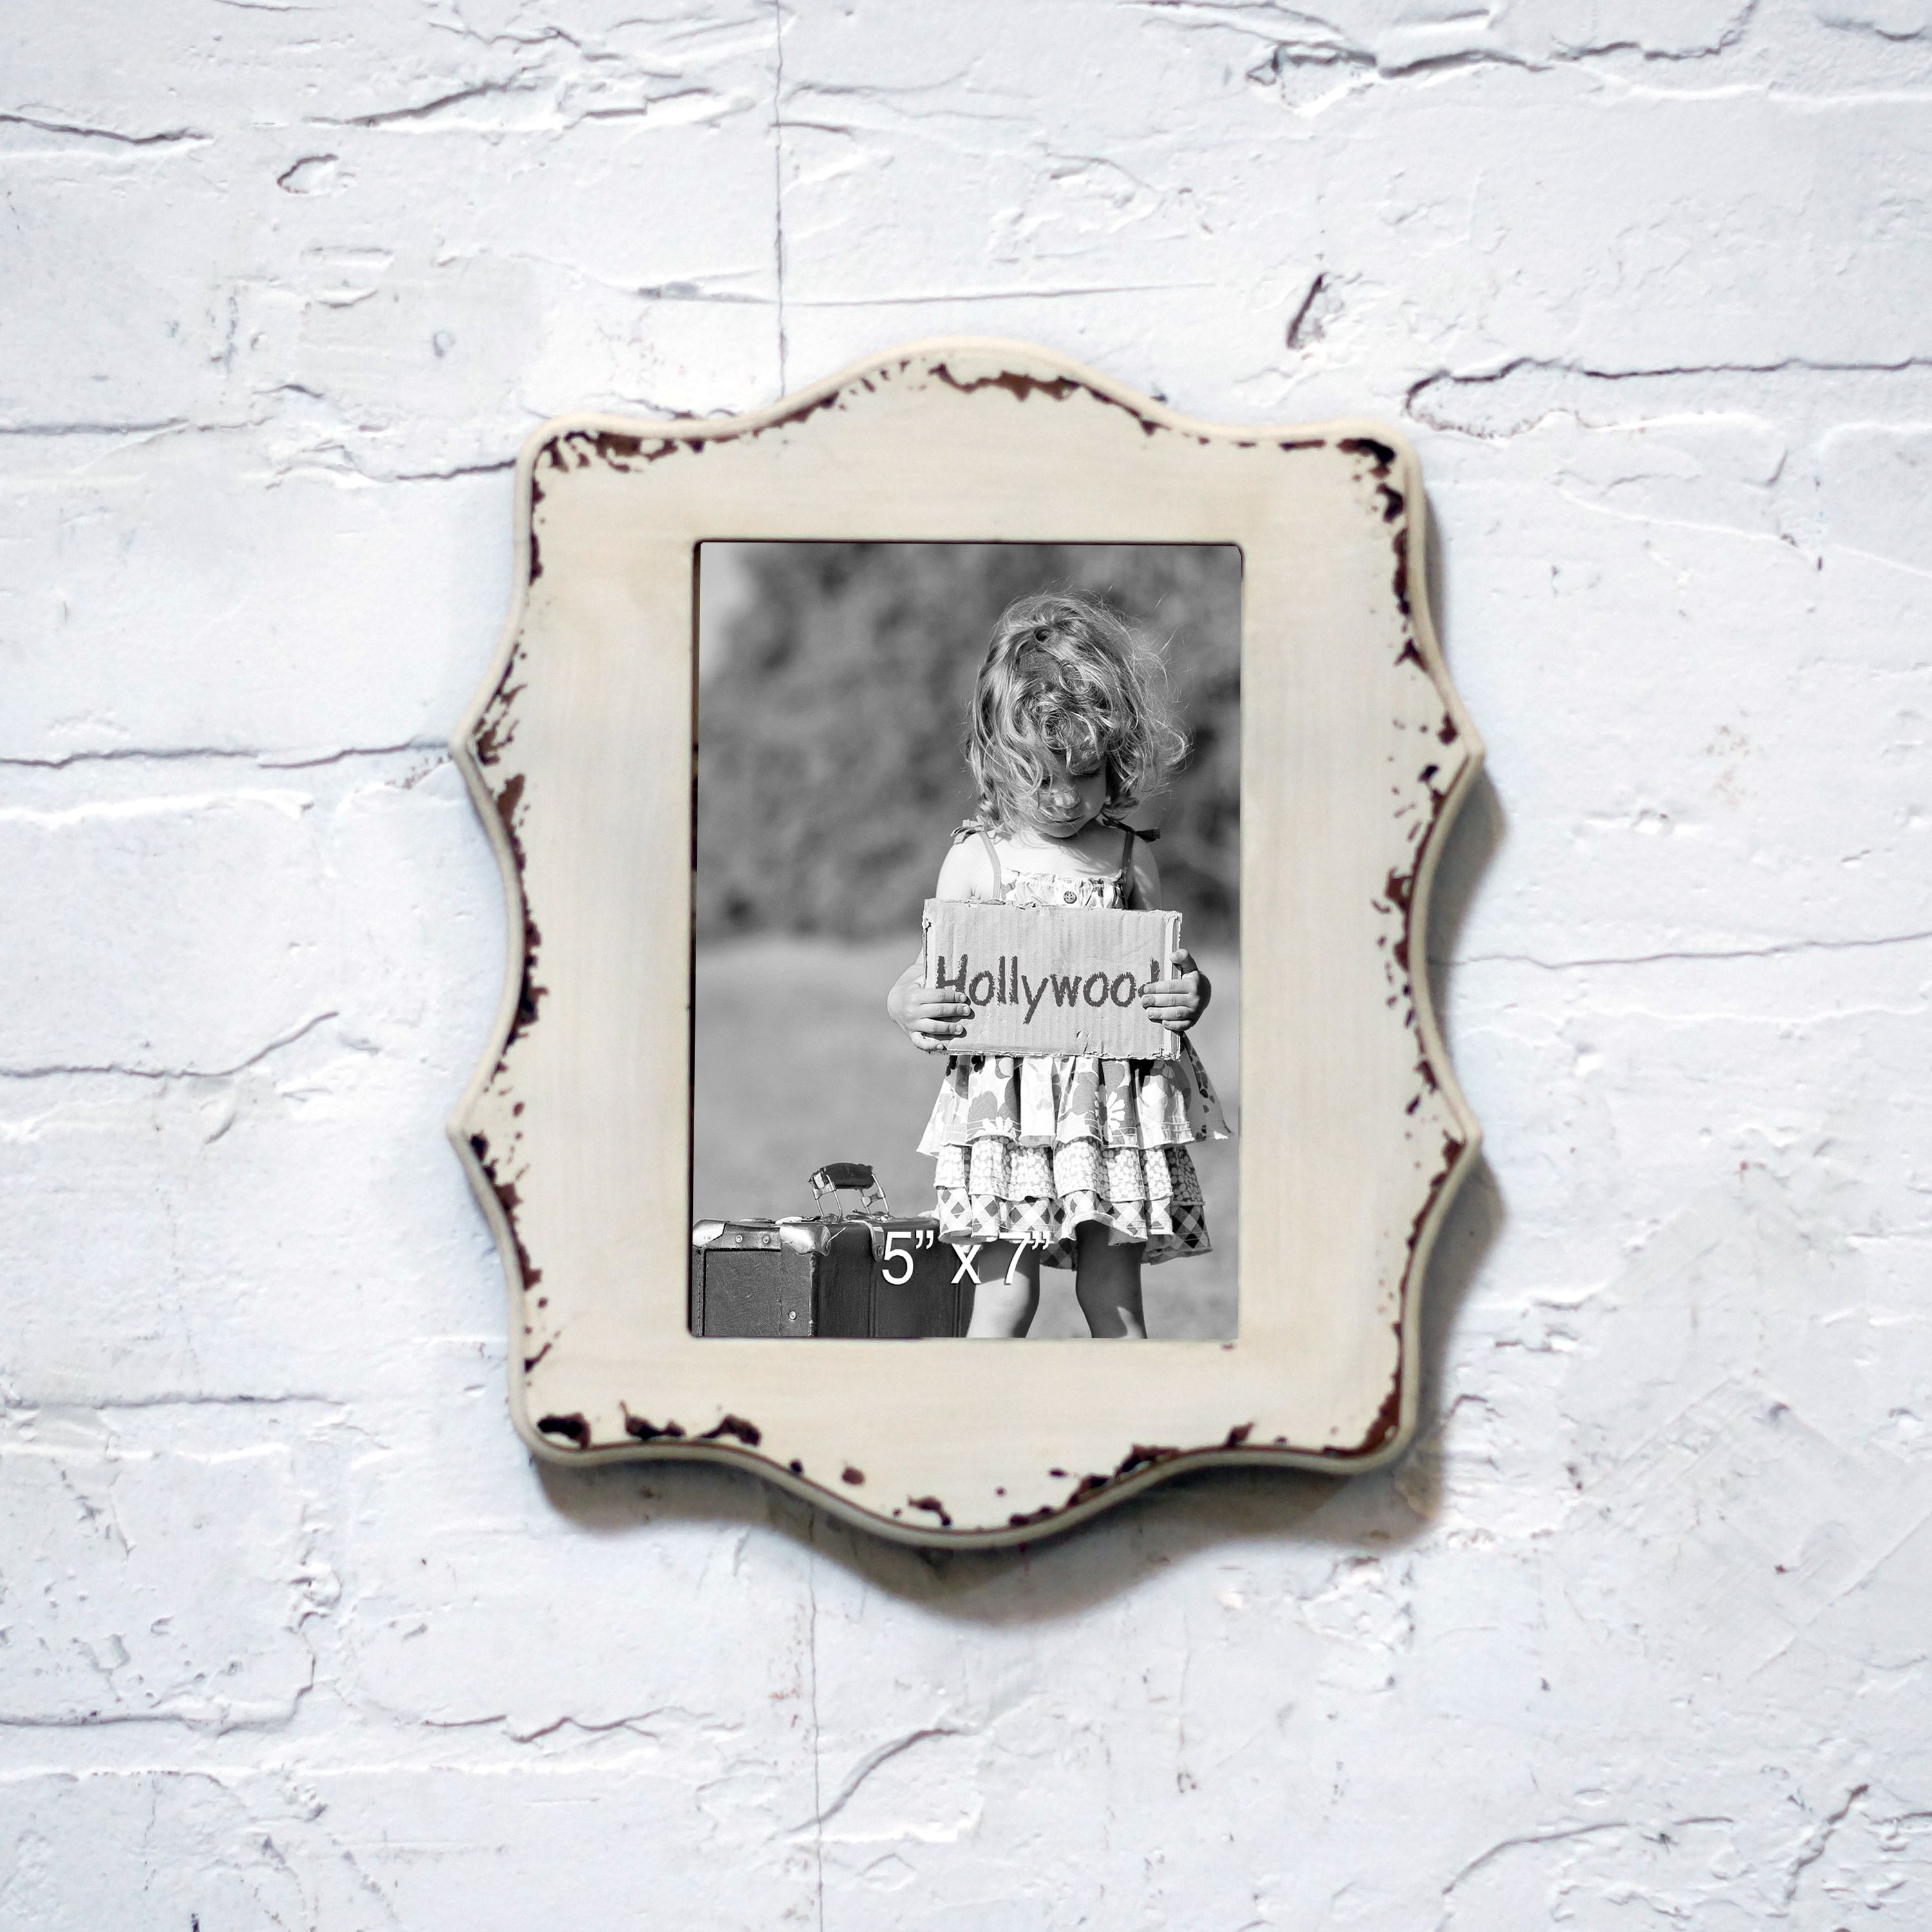 International mdf and 5 inch x 7 inch picture frame products international white mdf and glass 5 inch x 7 inch picture frame 5x7 frame wht jeuxipadfo Choice Image